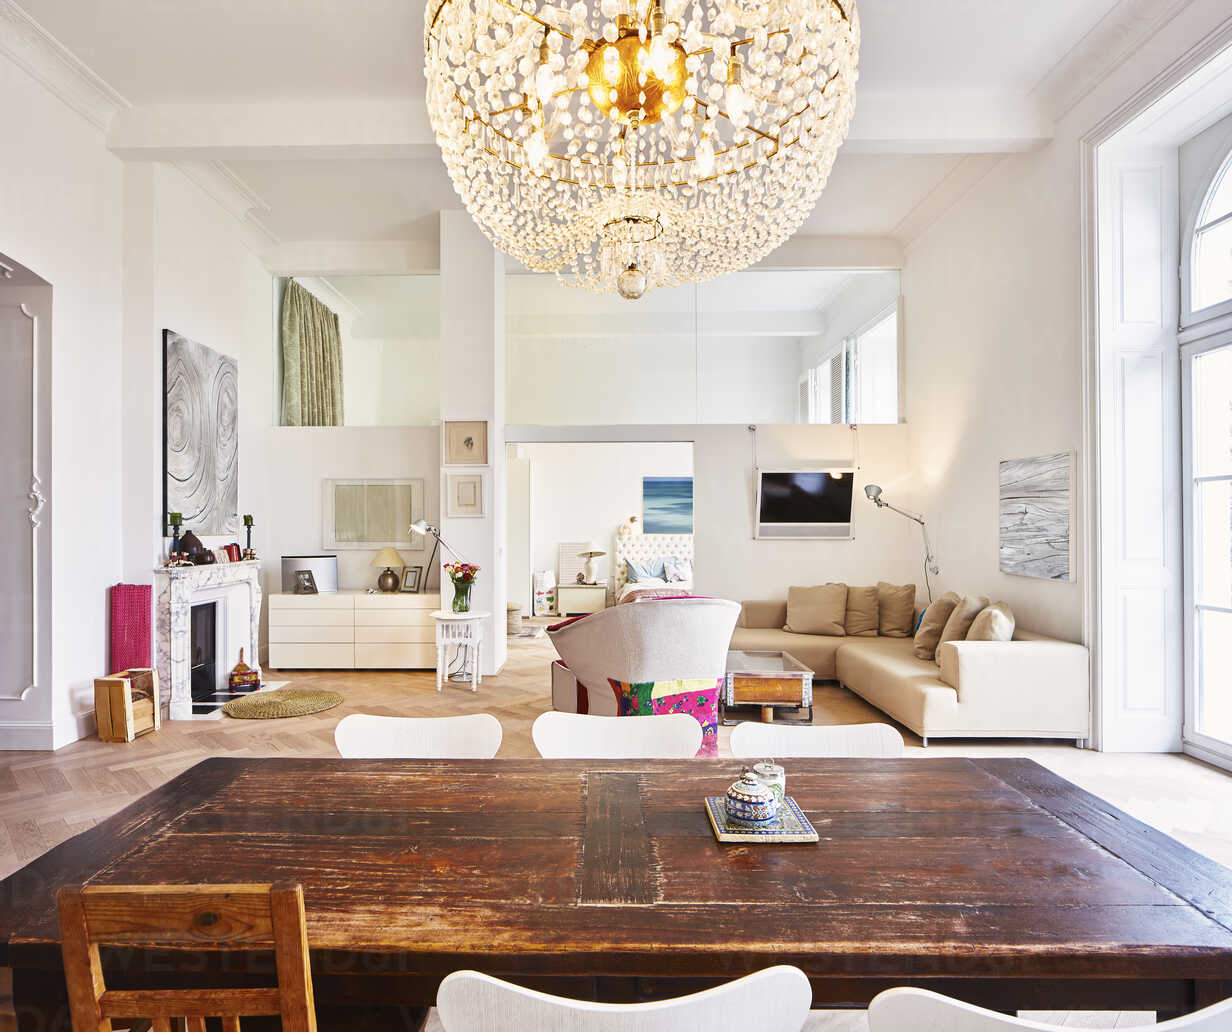 Living room in a refurbished old building with dining table in the foreground - DISF002034 - Dieter Schewig/Westend61